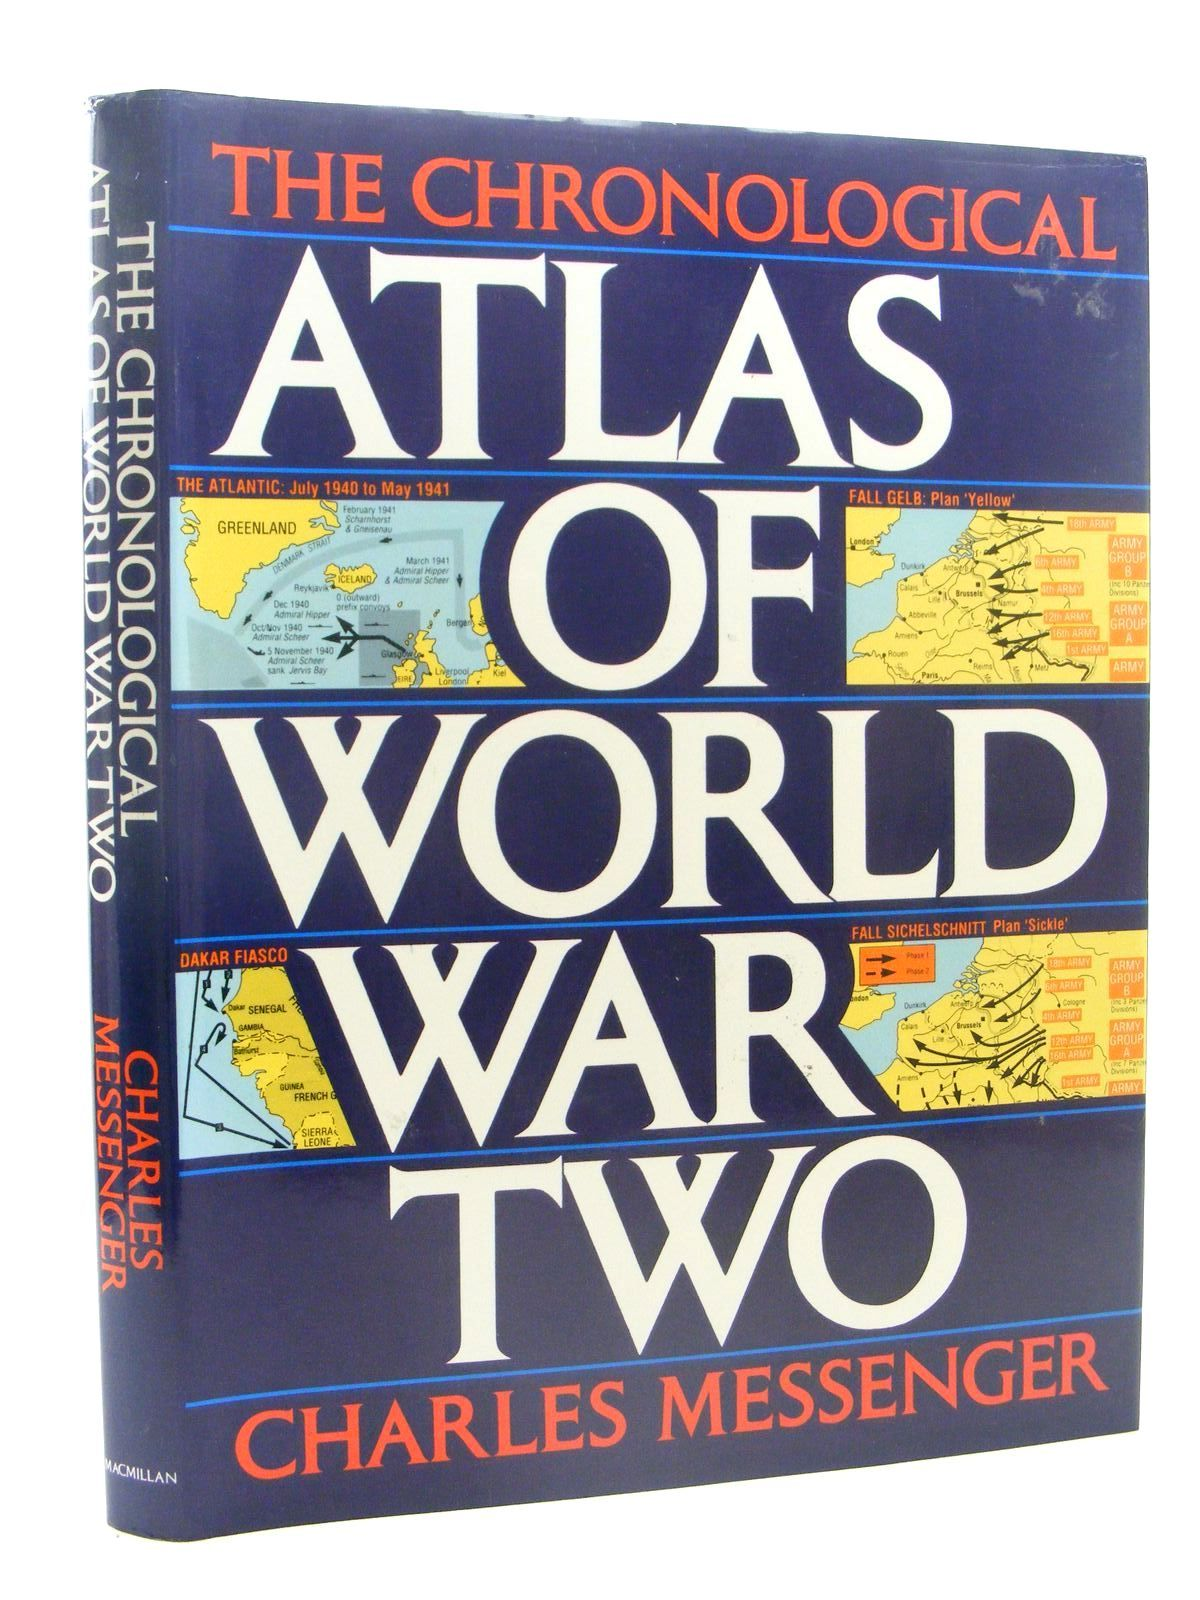 Photo of THE CHRONOLOGICAL ATLAS OF WORLD WAR TWO written by Messenger, Charles published by Macmillan Publishing Co. (STOCK CODE: 1610286)  for sale by Stella & Rose's Books